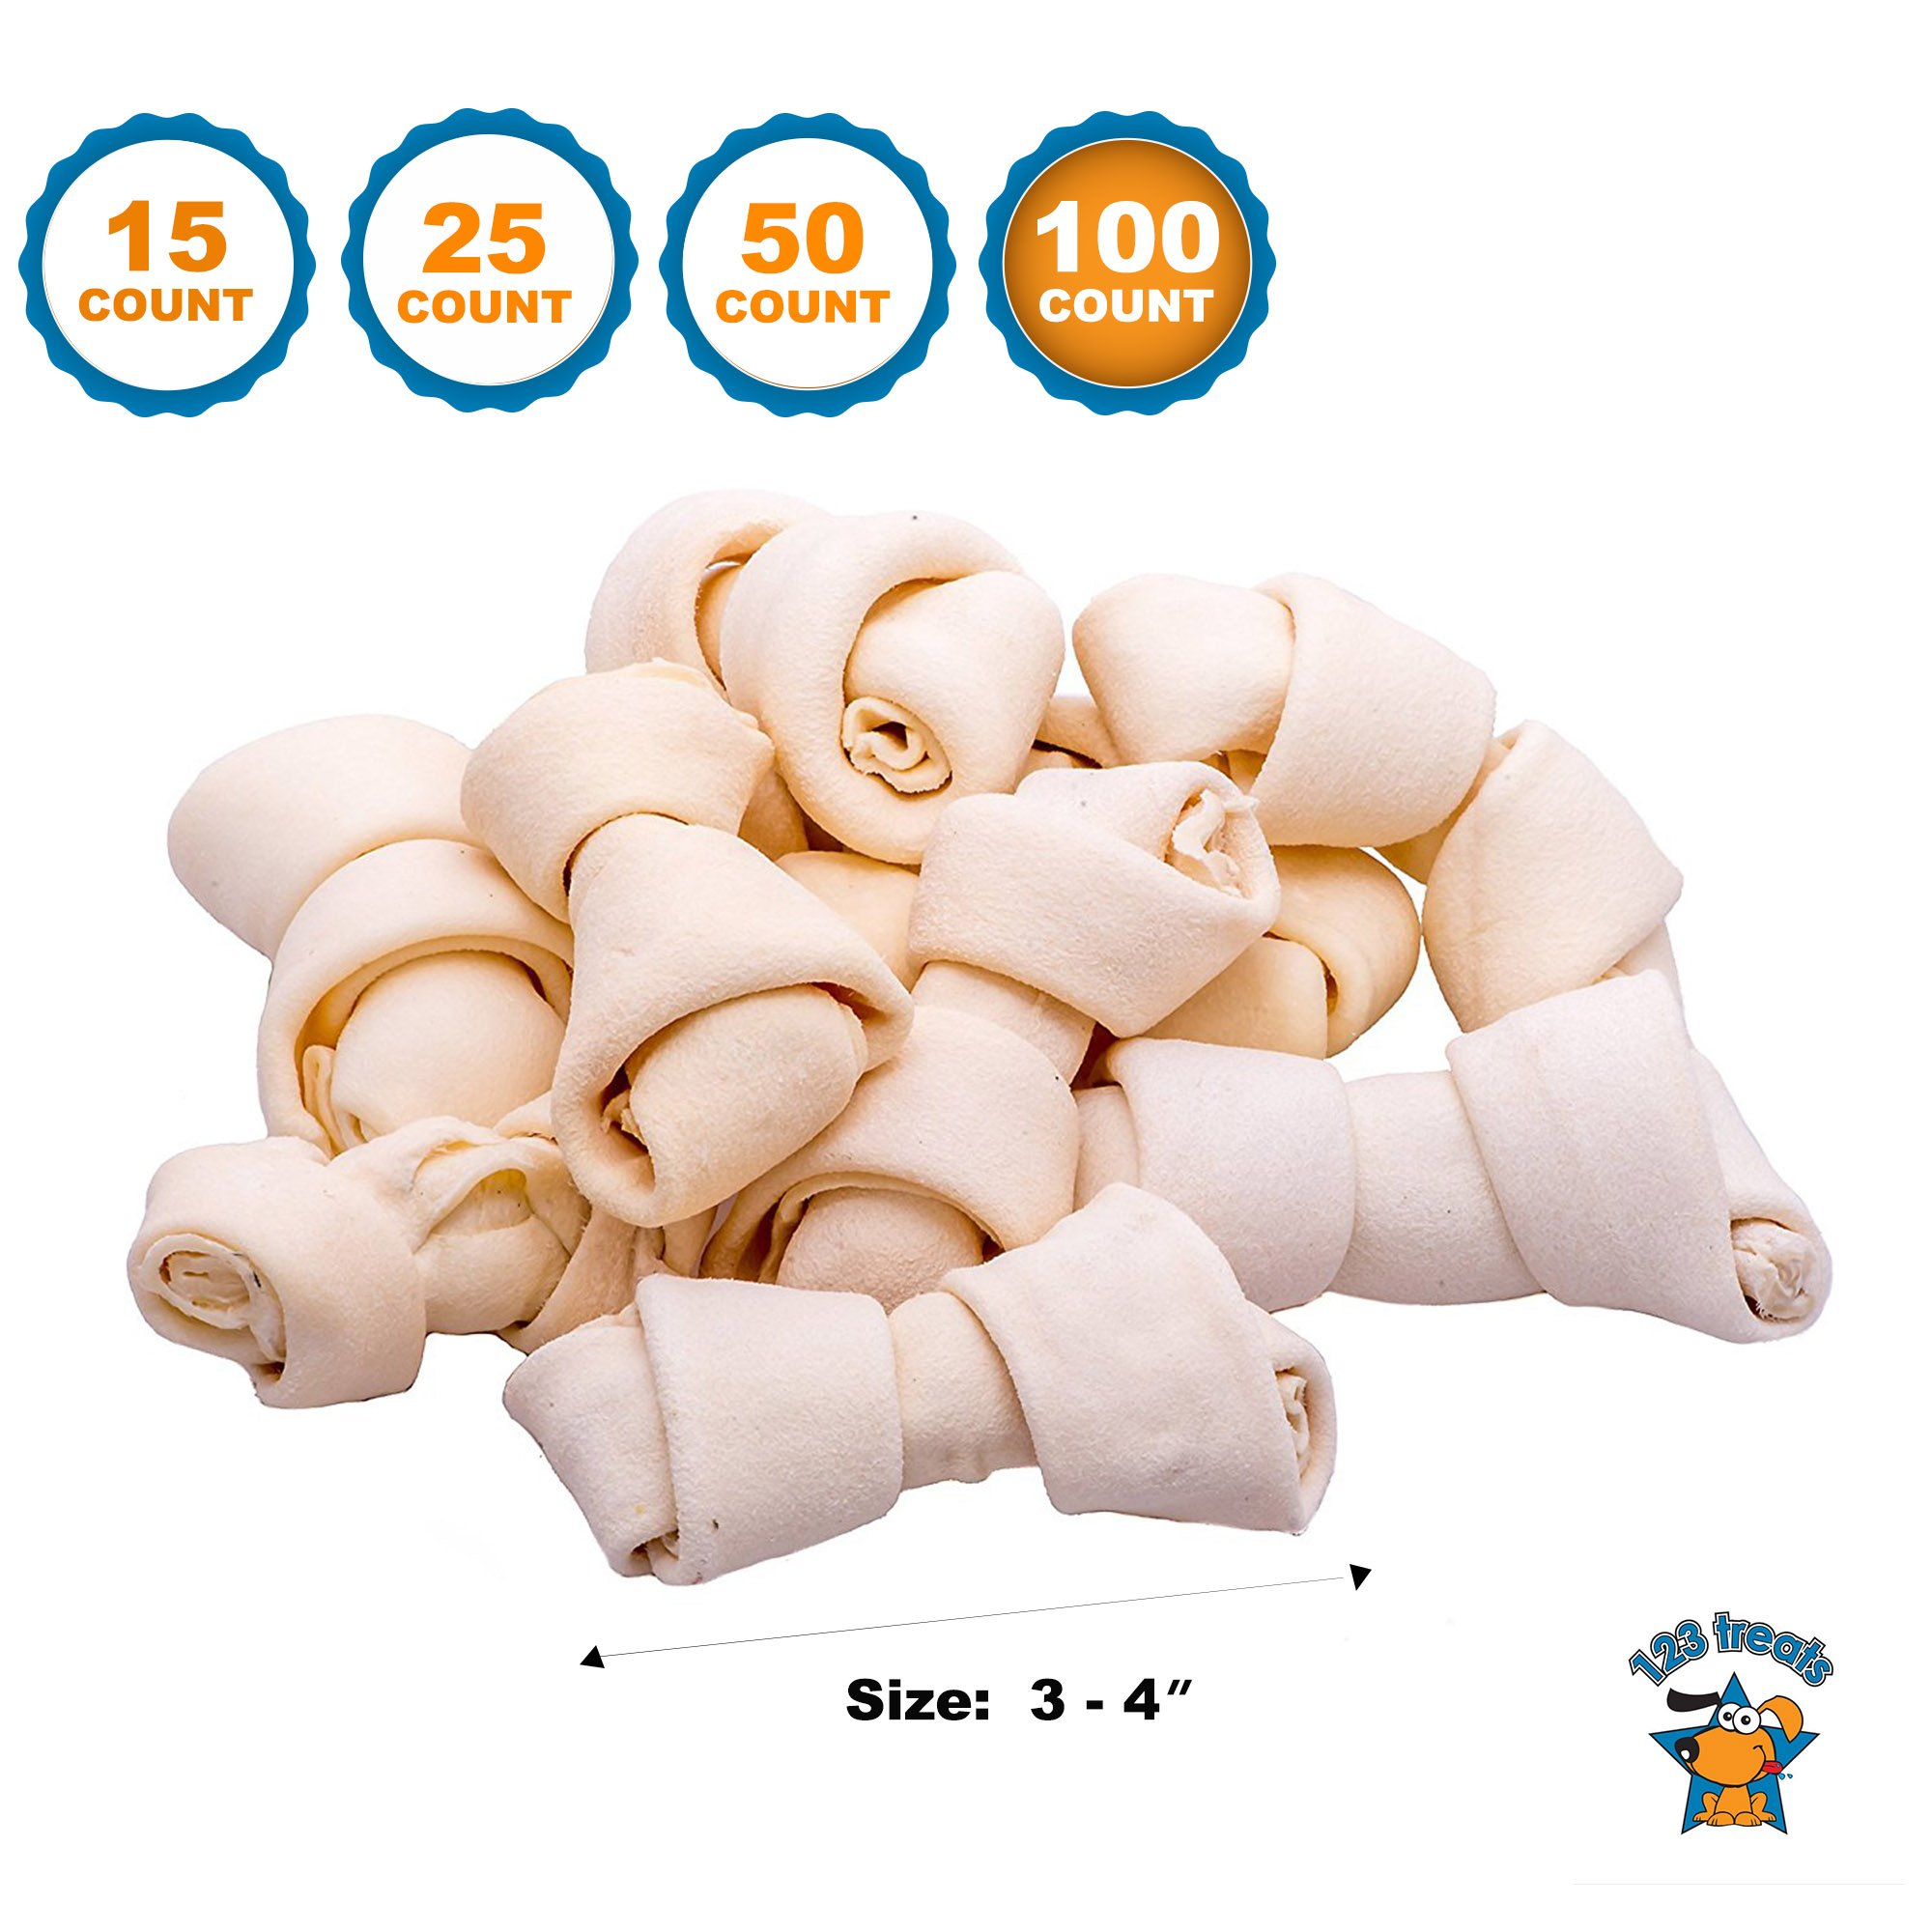 123 Treats | Rawhide Bones Chews 3-4'' (100 Count) Premium Rawhide Dog Bones | Free Range Grass Fed Cattle with No Hormones, Additives or Chemicals by 123 Treats